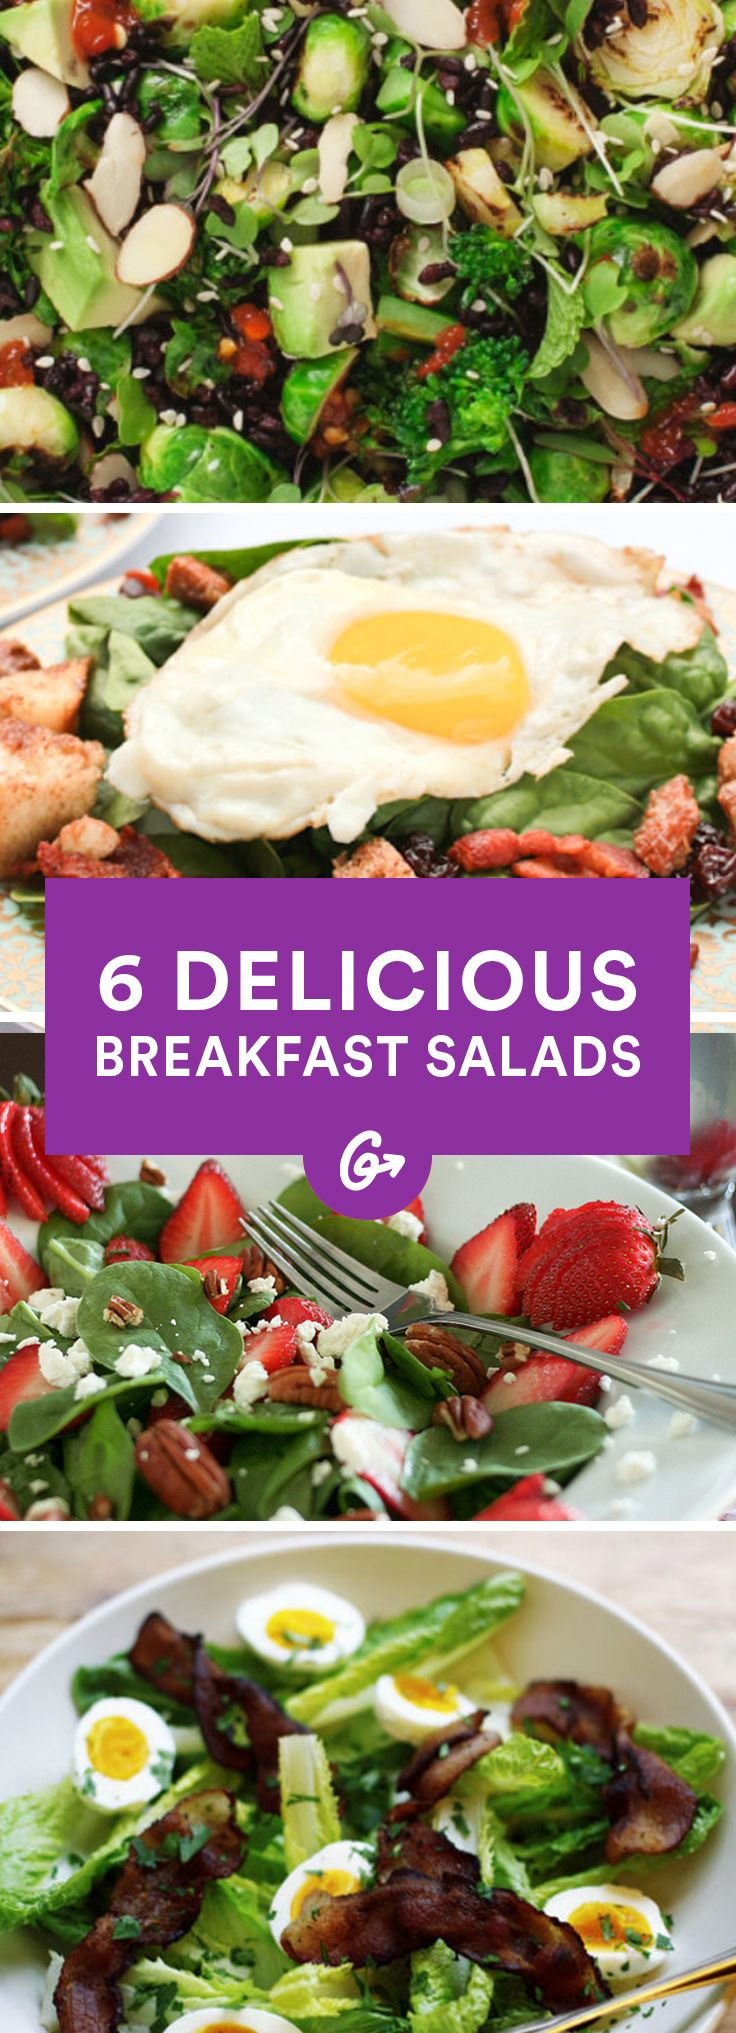 Salad for breakfast? Believe it. These six recipes will have you rethinking your morning routine #breakfast #salads http://greatist.com/eat/healthy-breakfast-salad-recipes